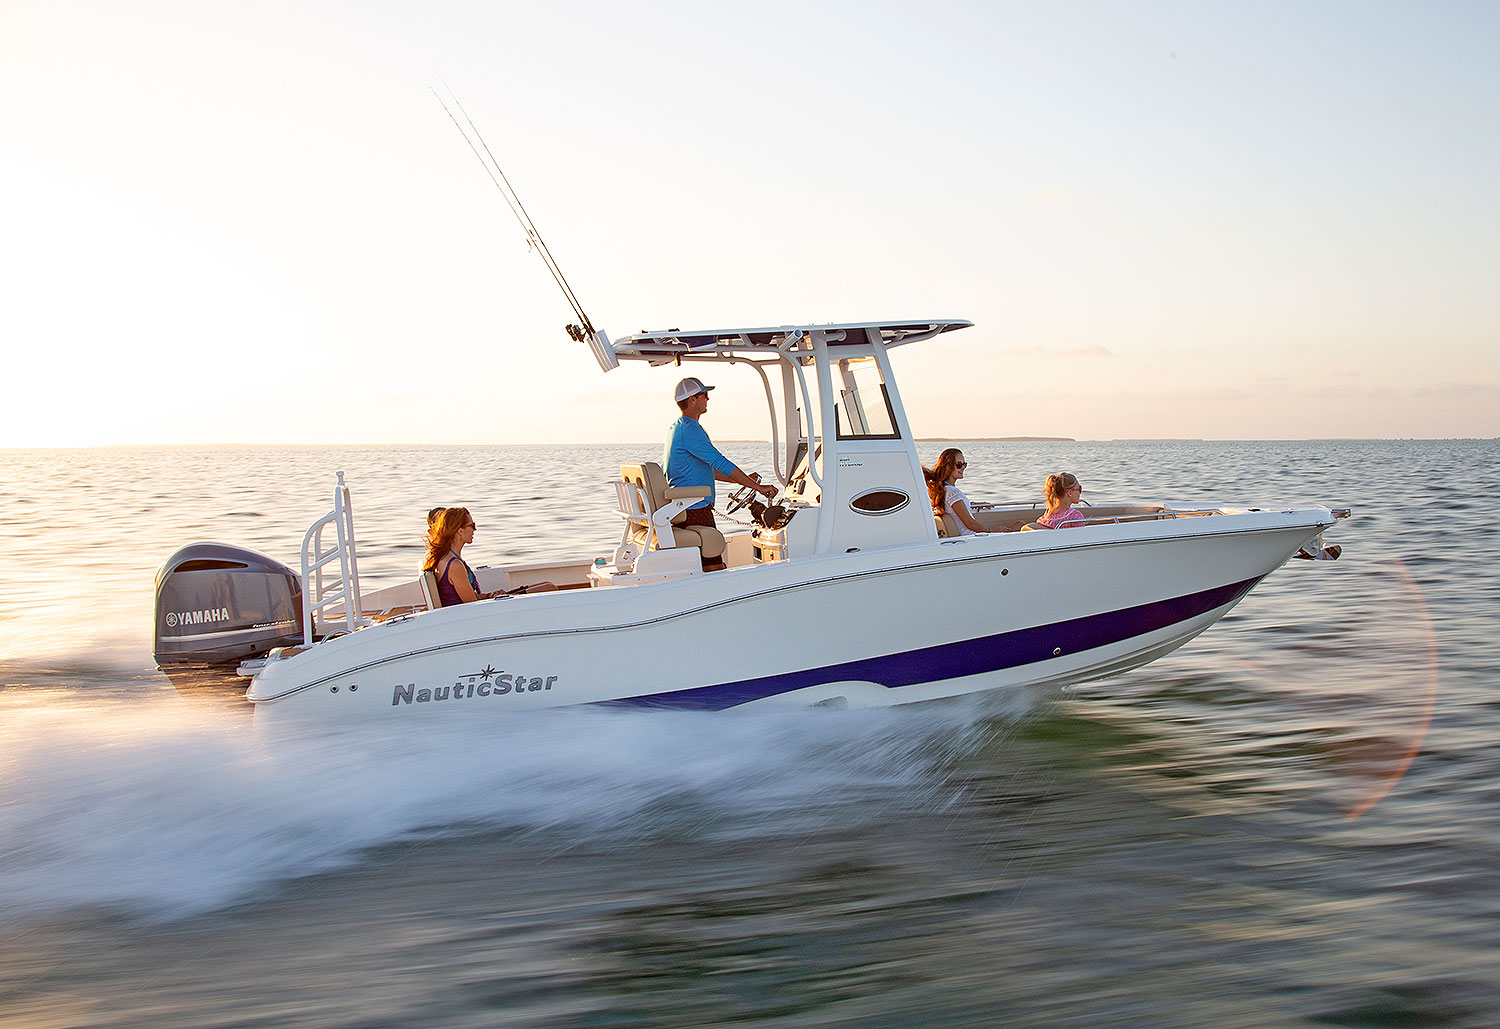 Three women and one man speeding on a NauticStar 251 Hybrid boat